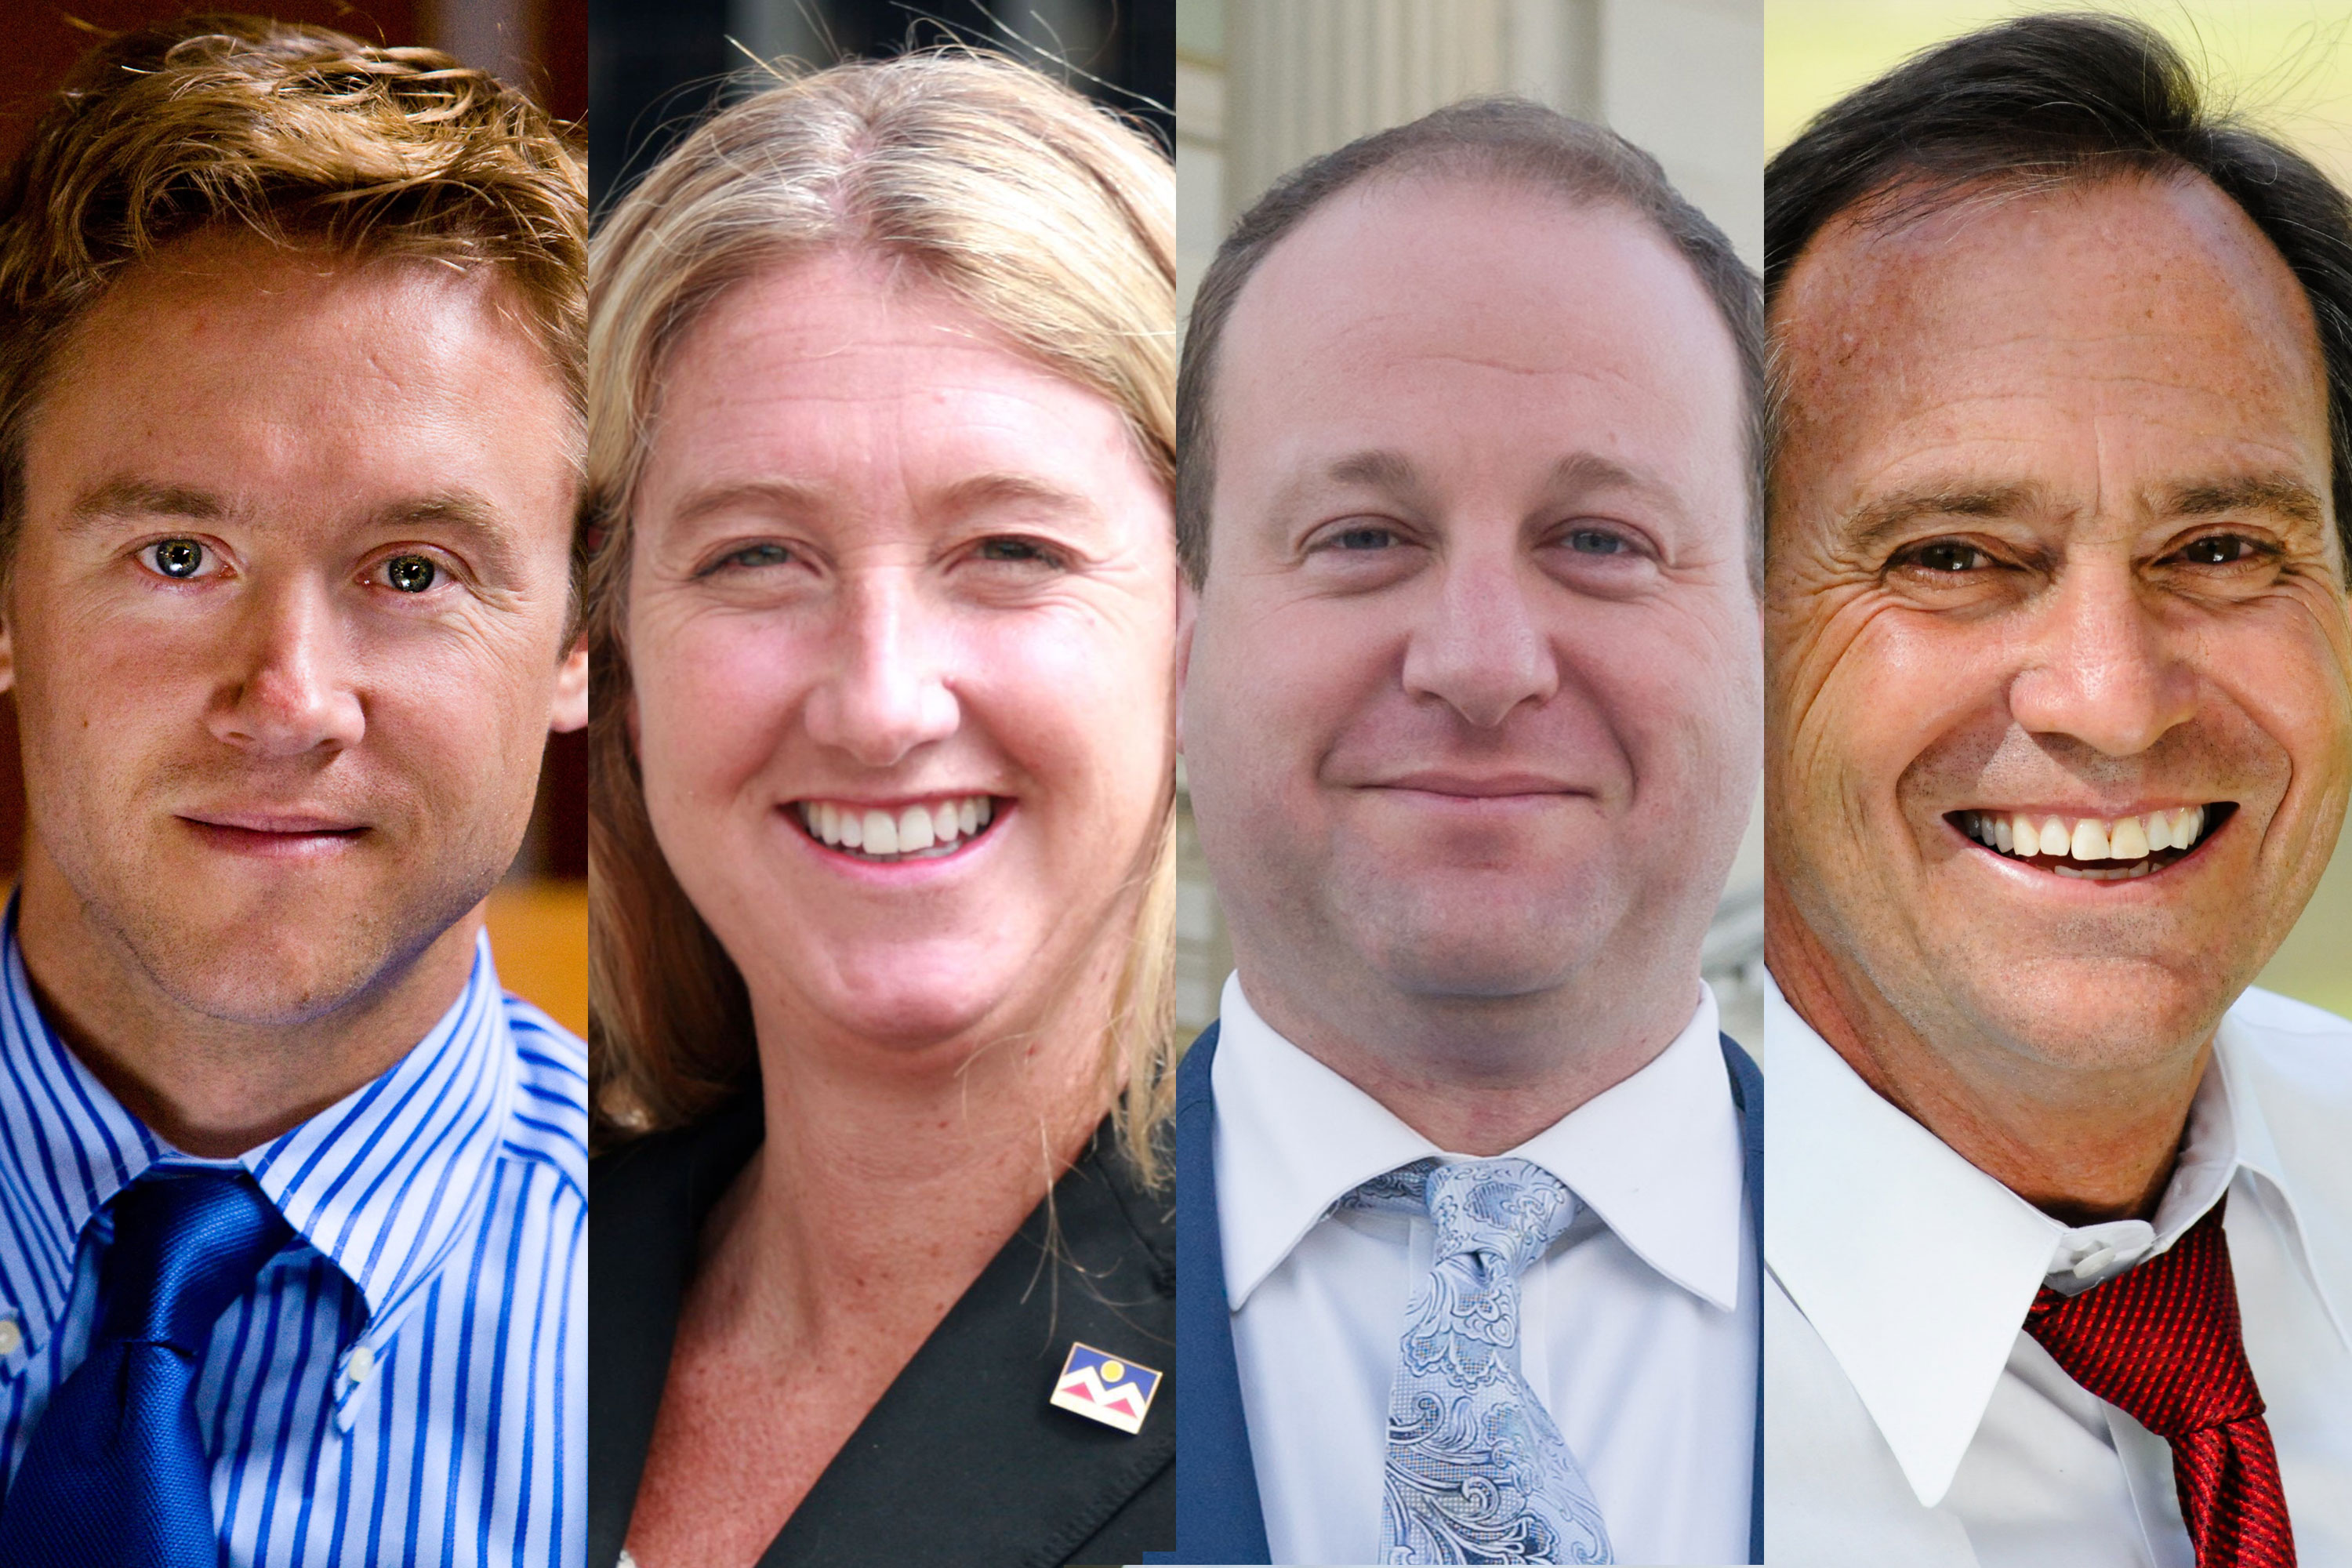 <p>Four of the leading candidates for the Democratic nomination for Colorado's governor, left to right: former state senator Mike Johnston, former state treasurer Cary Kennedy, and U.S. Reps Jared Polis and Ed Perlmutter.</p>